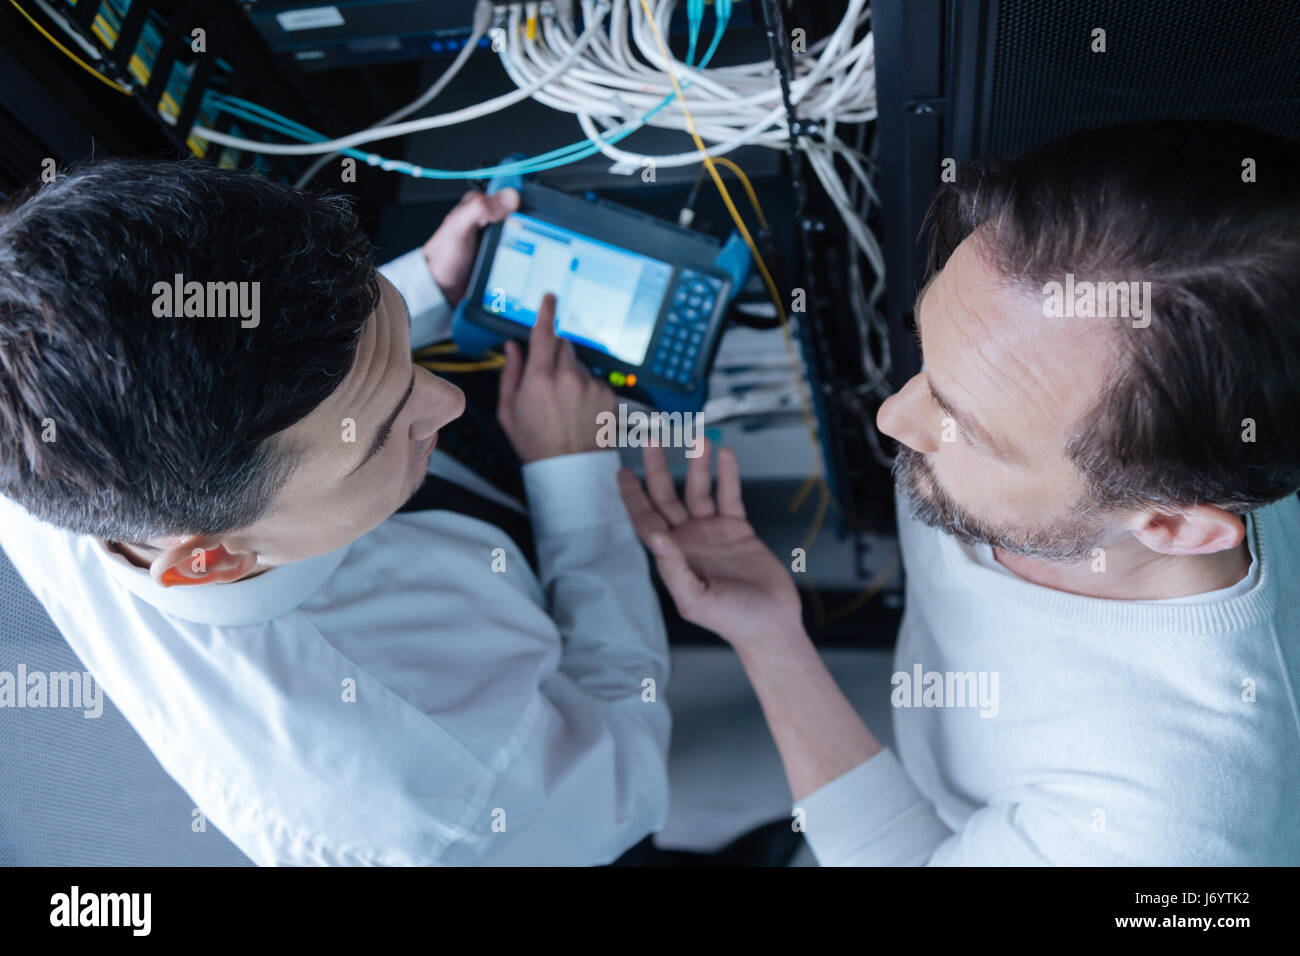 Top view of professional technicians having a conversation - Stock Image